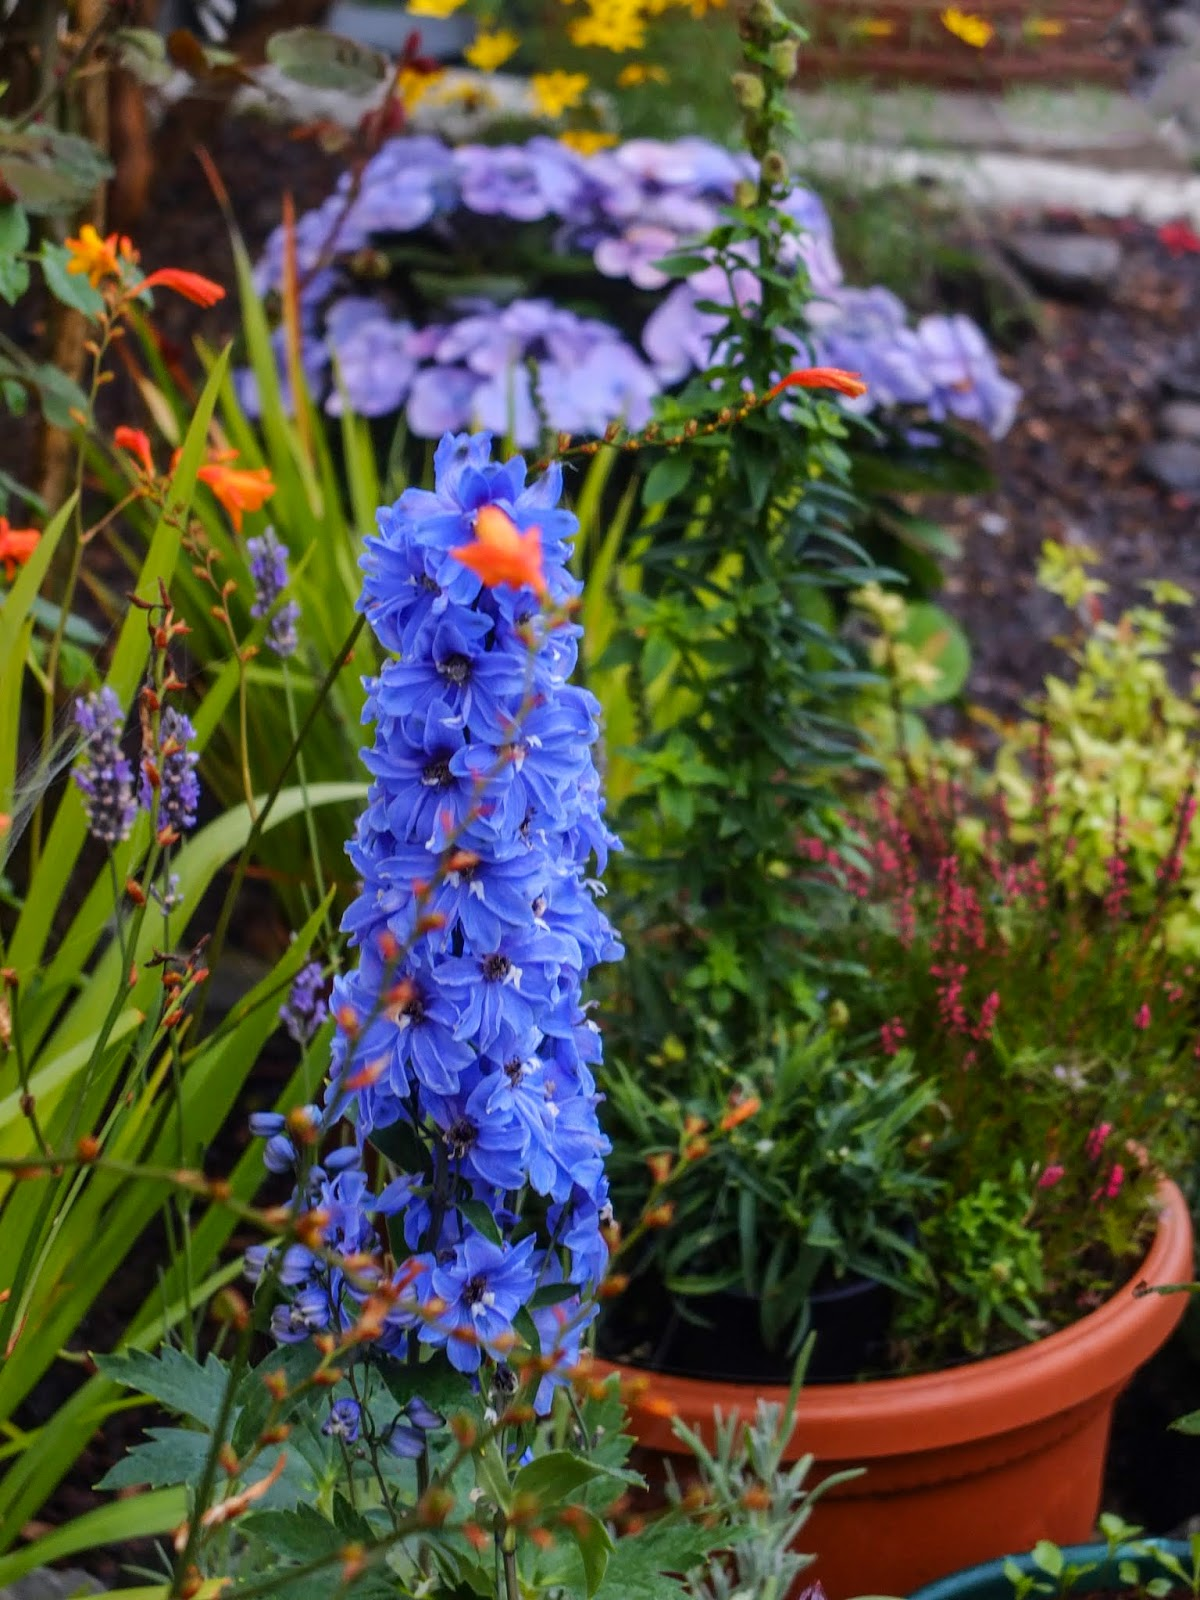 Blue Delphiniums and other flowers in an autumn garden.